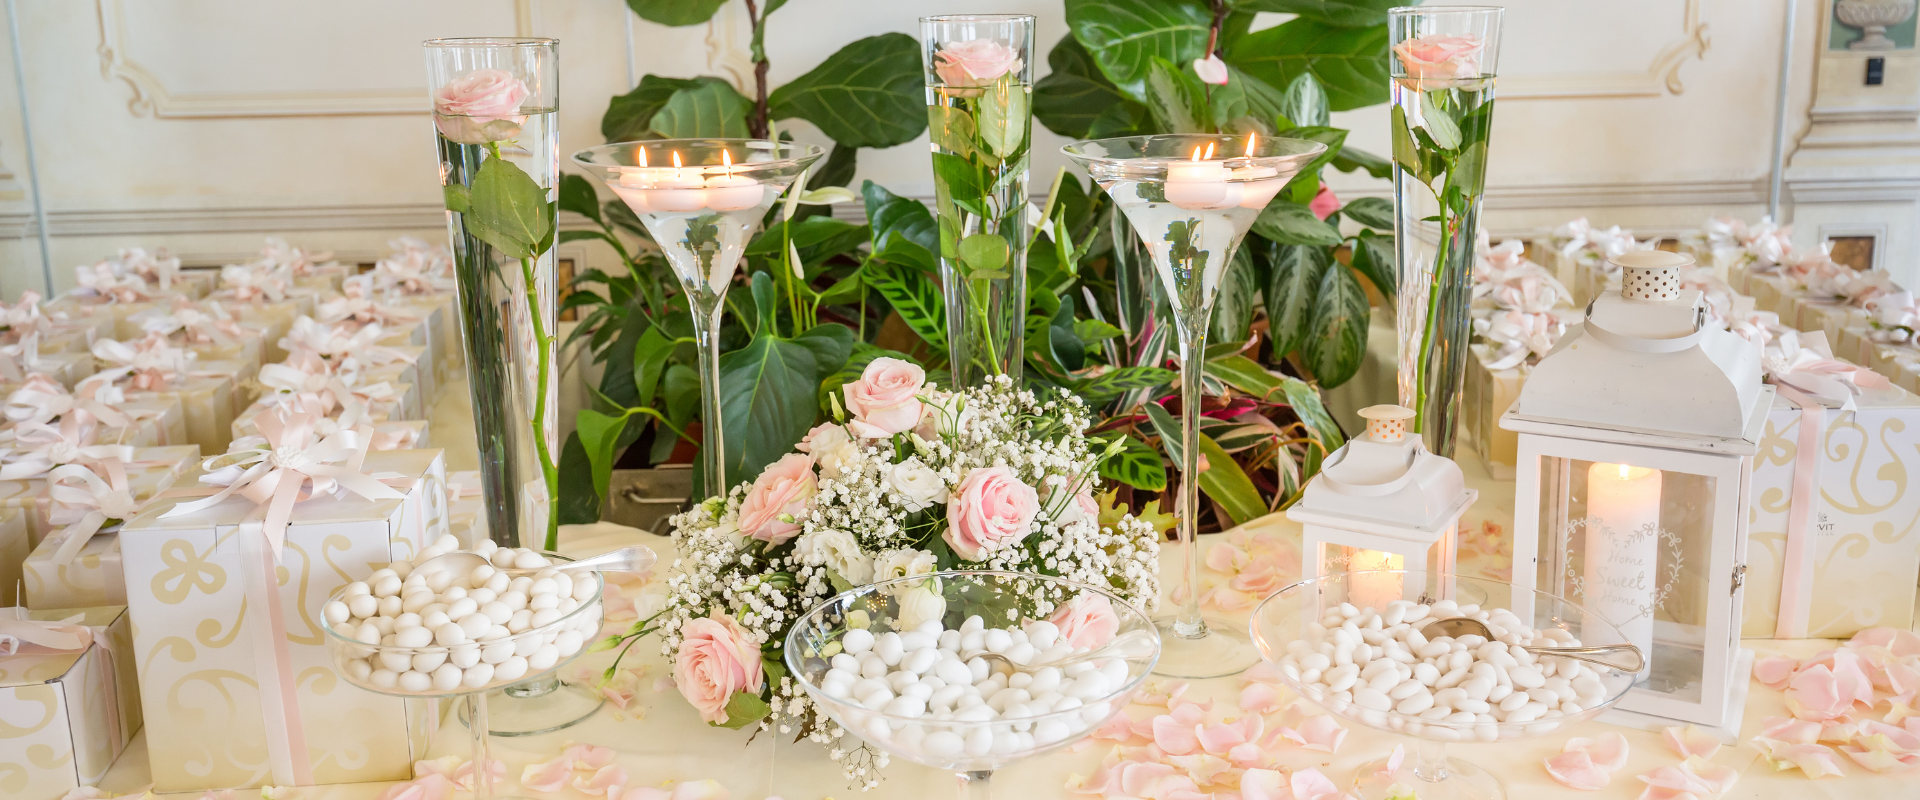 Do's and Don'ts For Wedding Favors